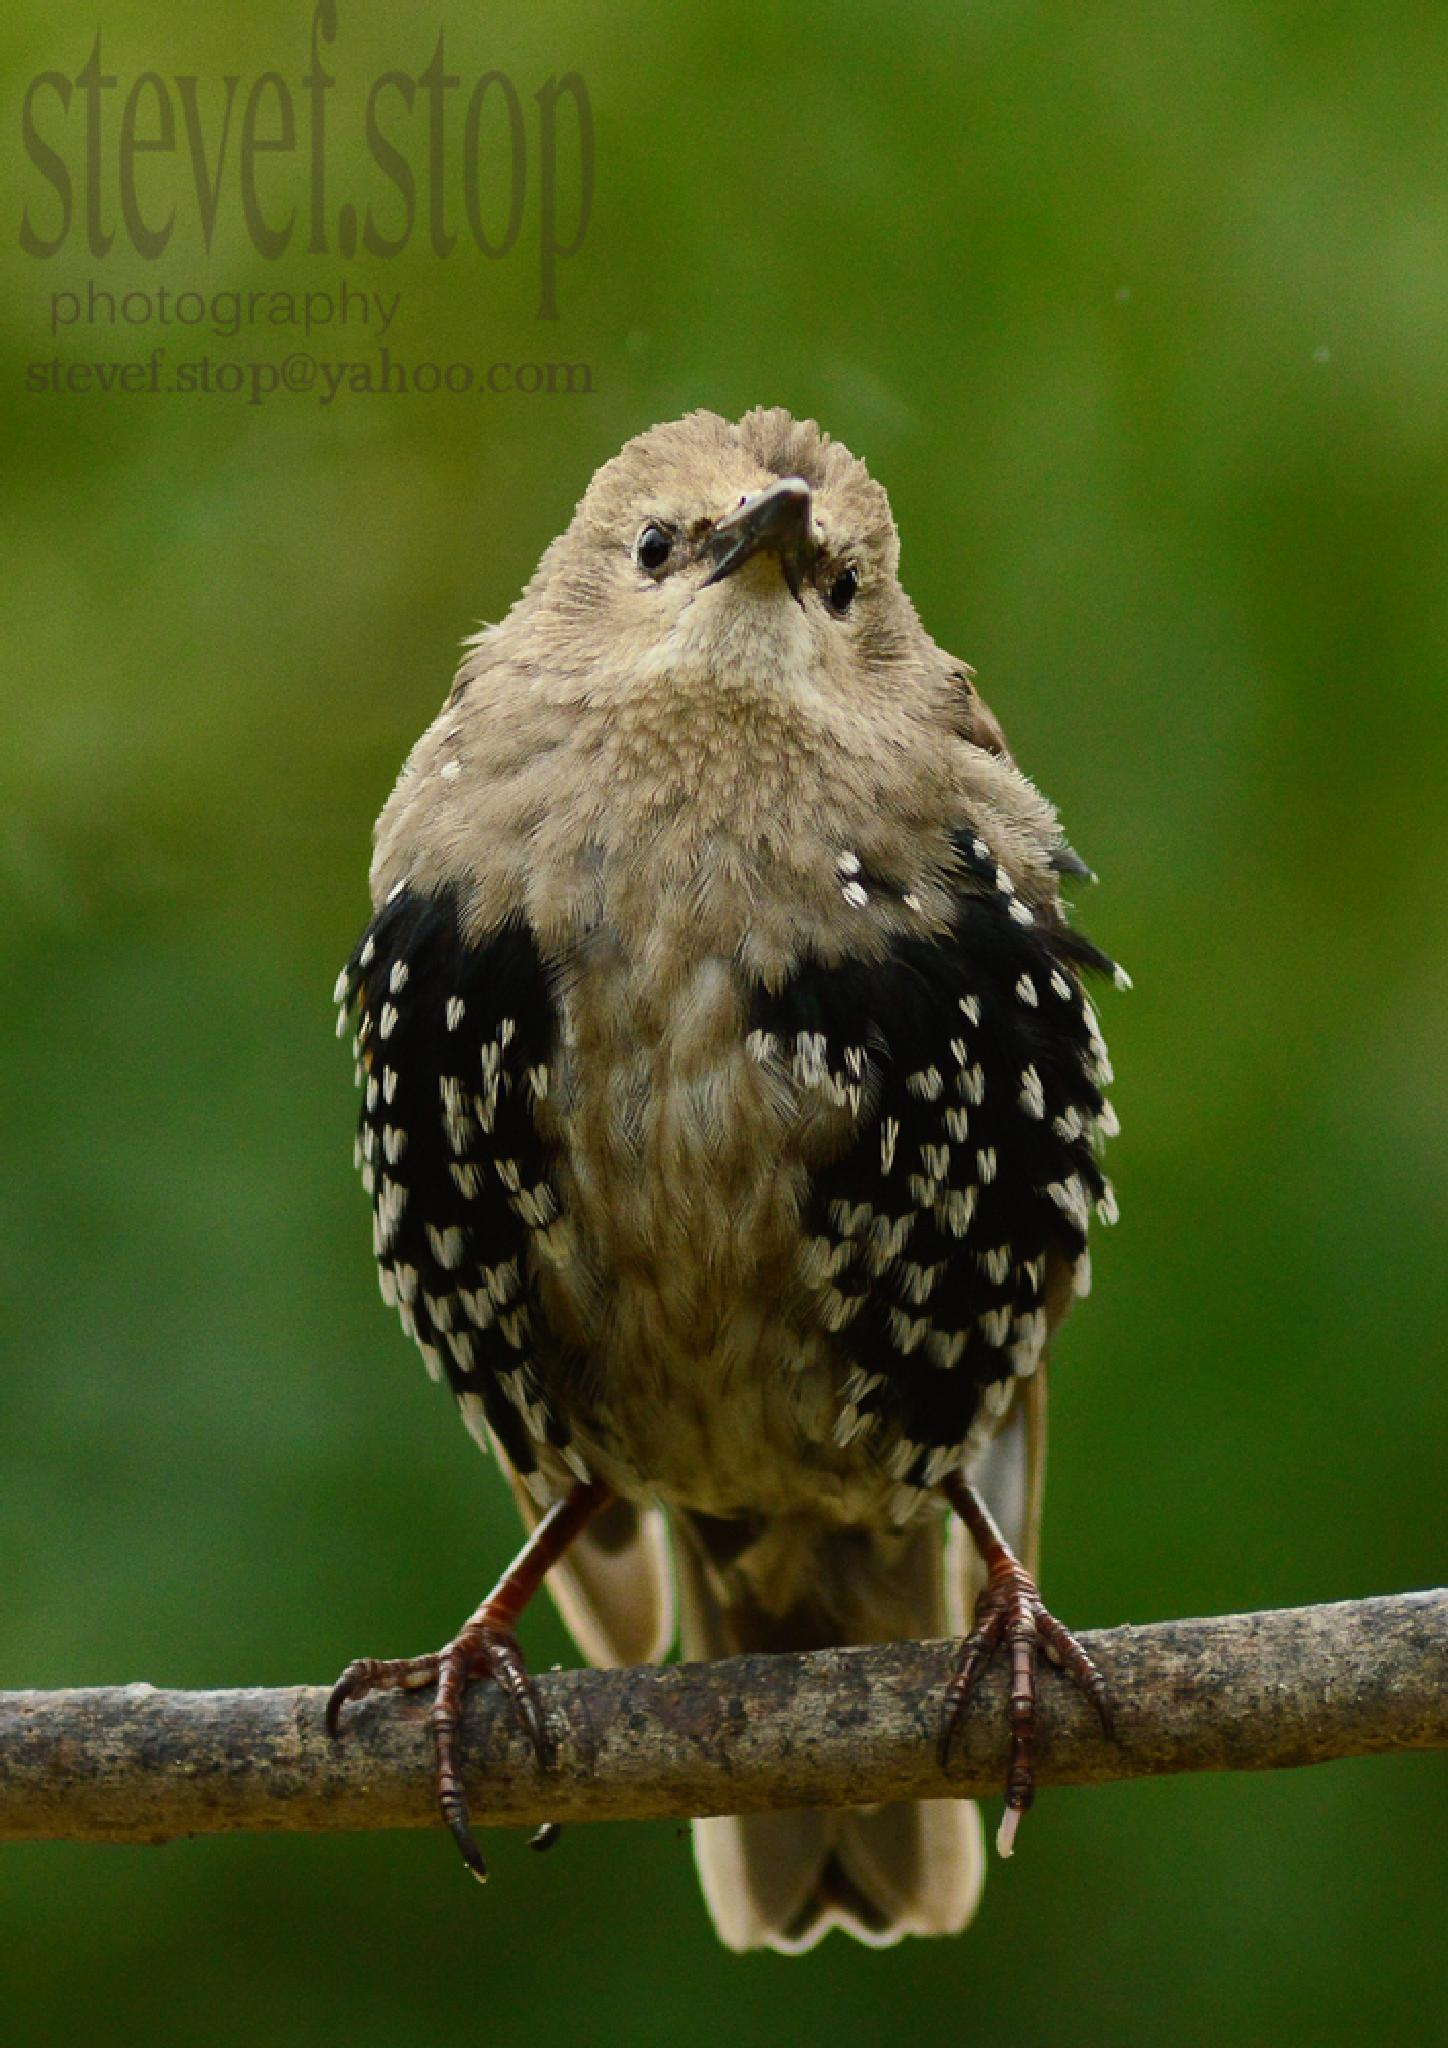 Juvenile Starling in the rain by stevef.stop